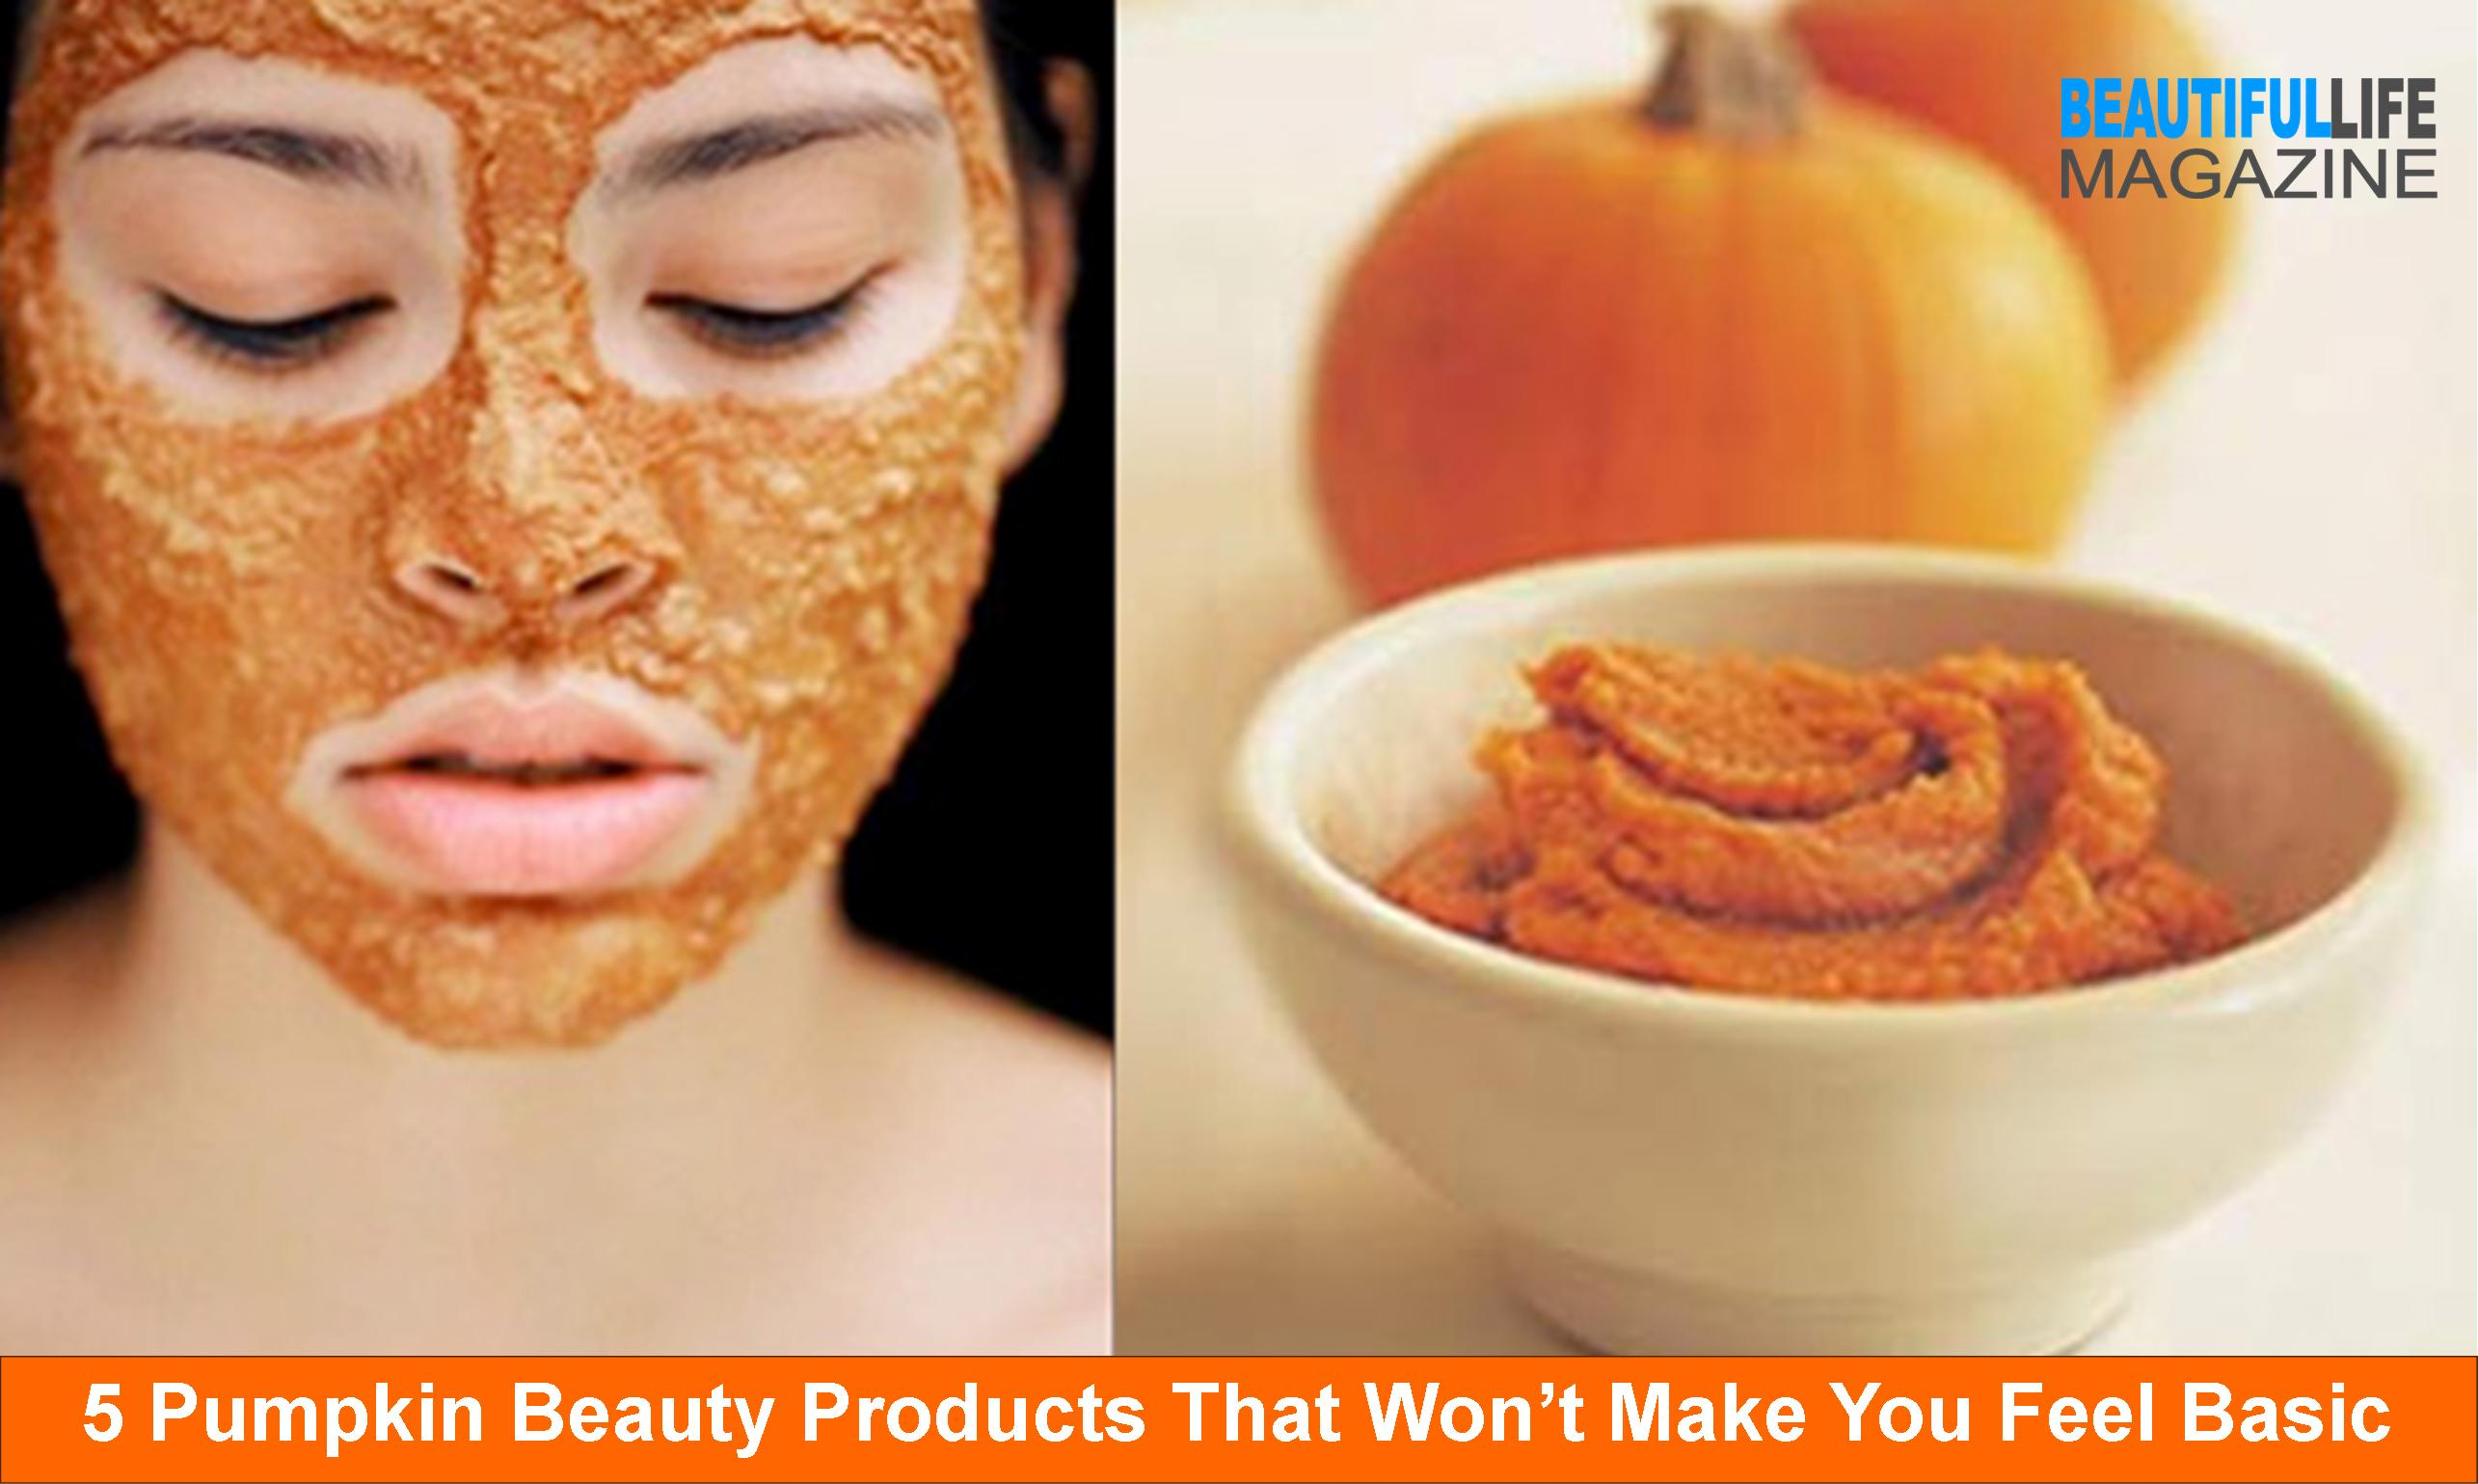 It's worth noting that pumpkin beauty with extract is packed with antioxidants vitamins A and C. Those powerhouse compounds can helpboost collagen.